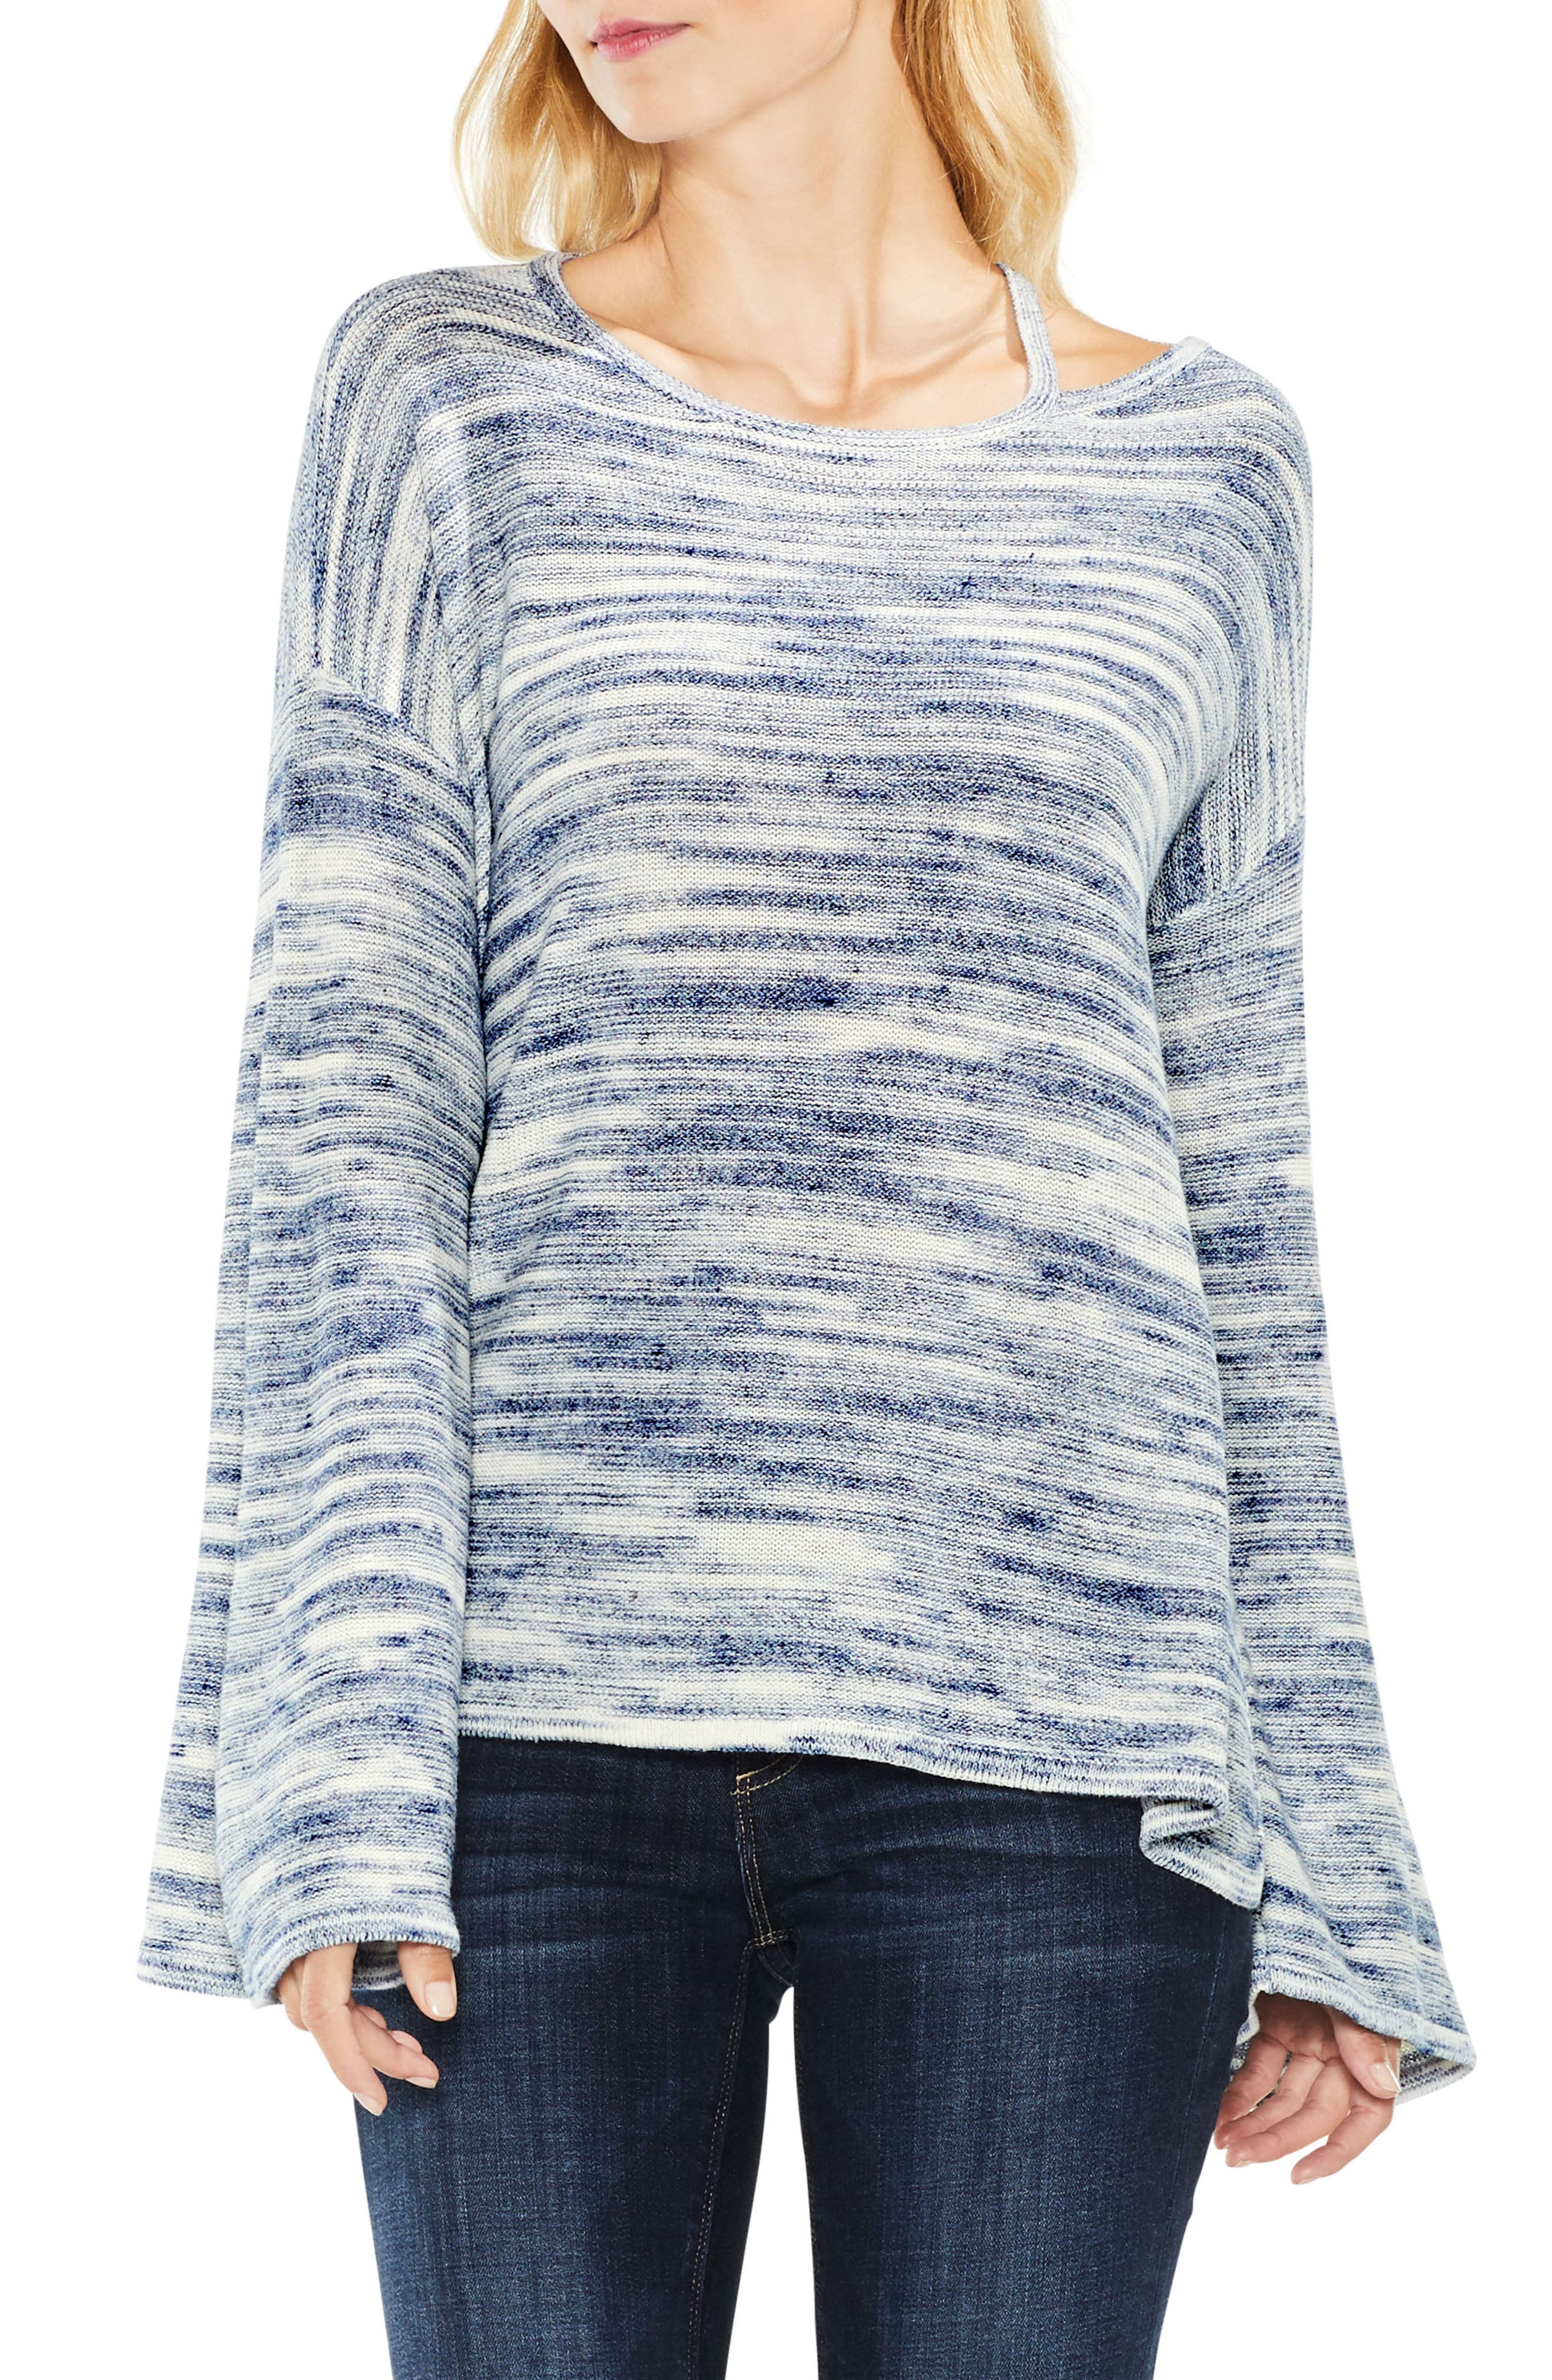 Main Image - Two by Vince Camuto Drop Shoulder Space Dye Sweater